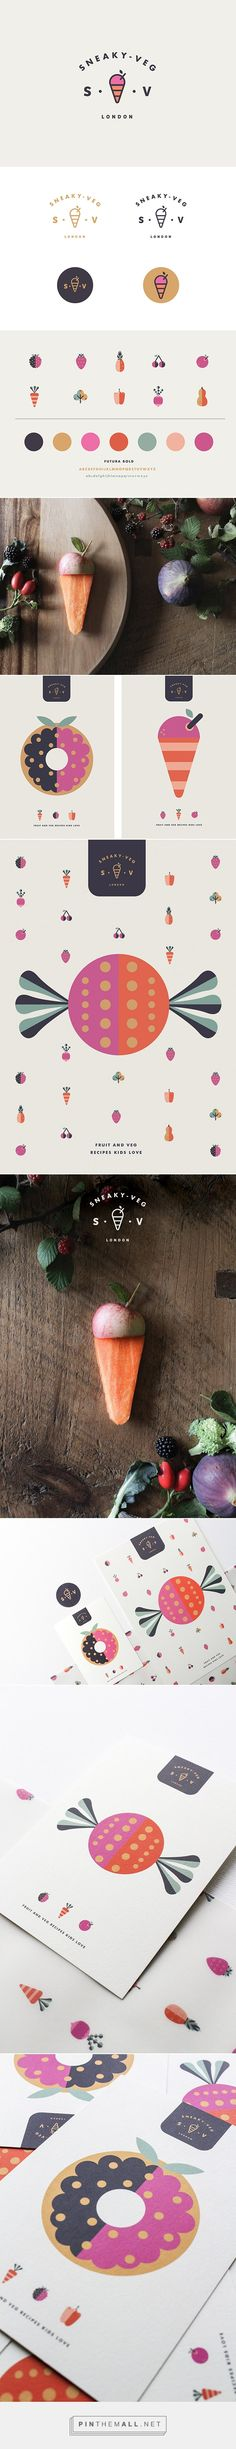 Super cute, really well designed branding, everything works so well together, love the color play. Sneaky Veg brand identity and design on Behance. Corporate Design, Brand Identity Design, Graphic Design Branding, Typography Design, Lettering, Stationery Design, Illustration Inspiration, Graphic Design Inspiration, Fruit Illustration